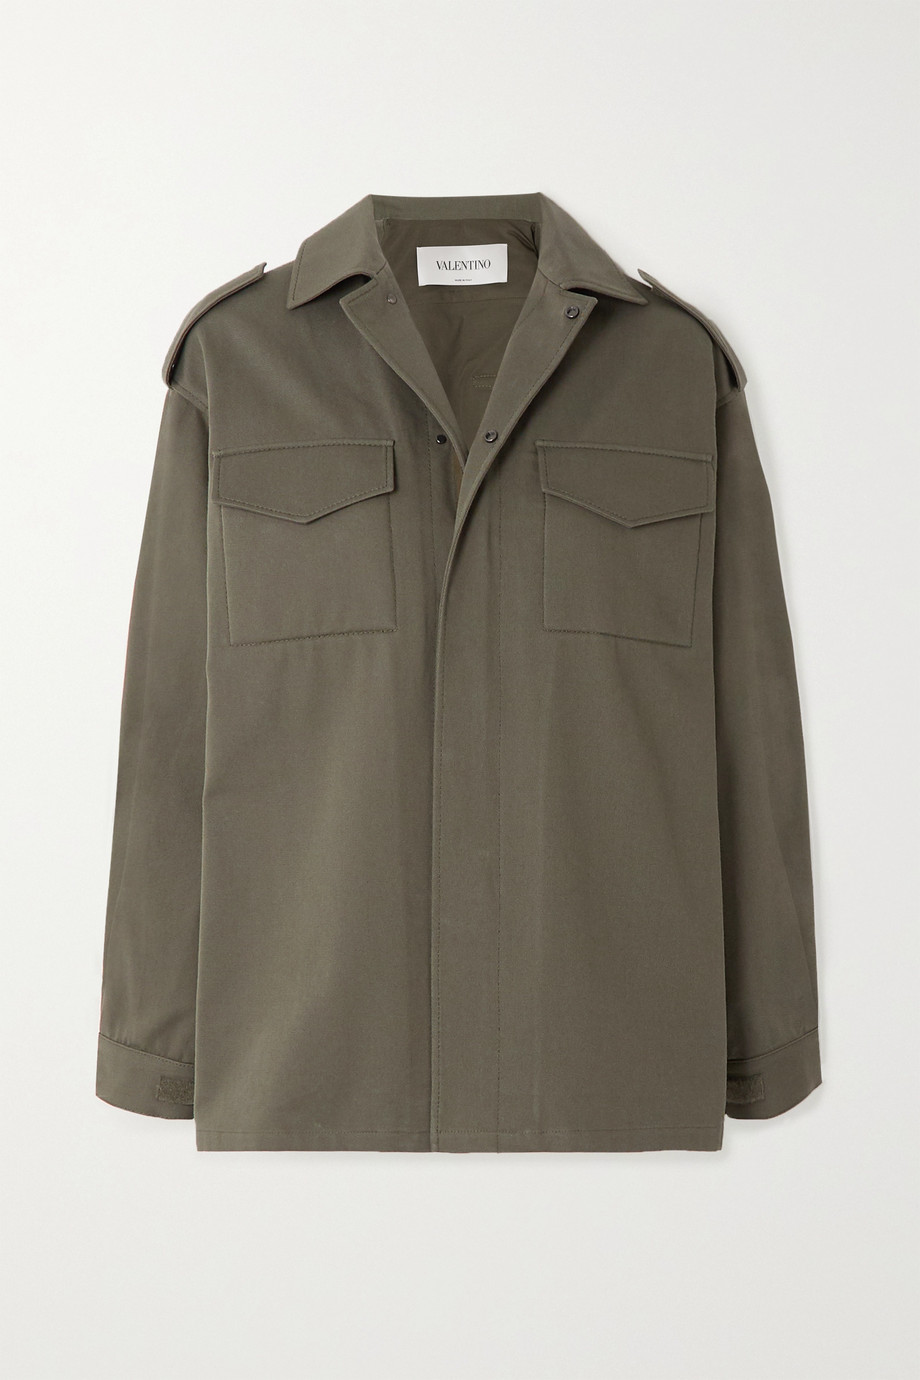 Valentino Cotton-twill jacket